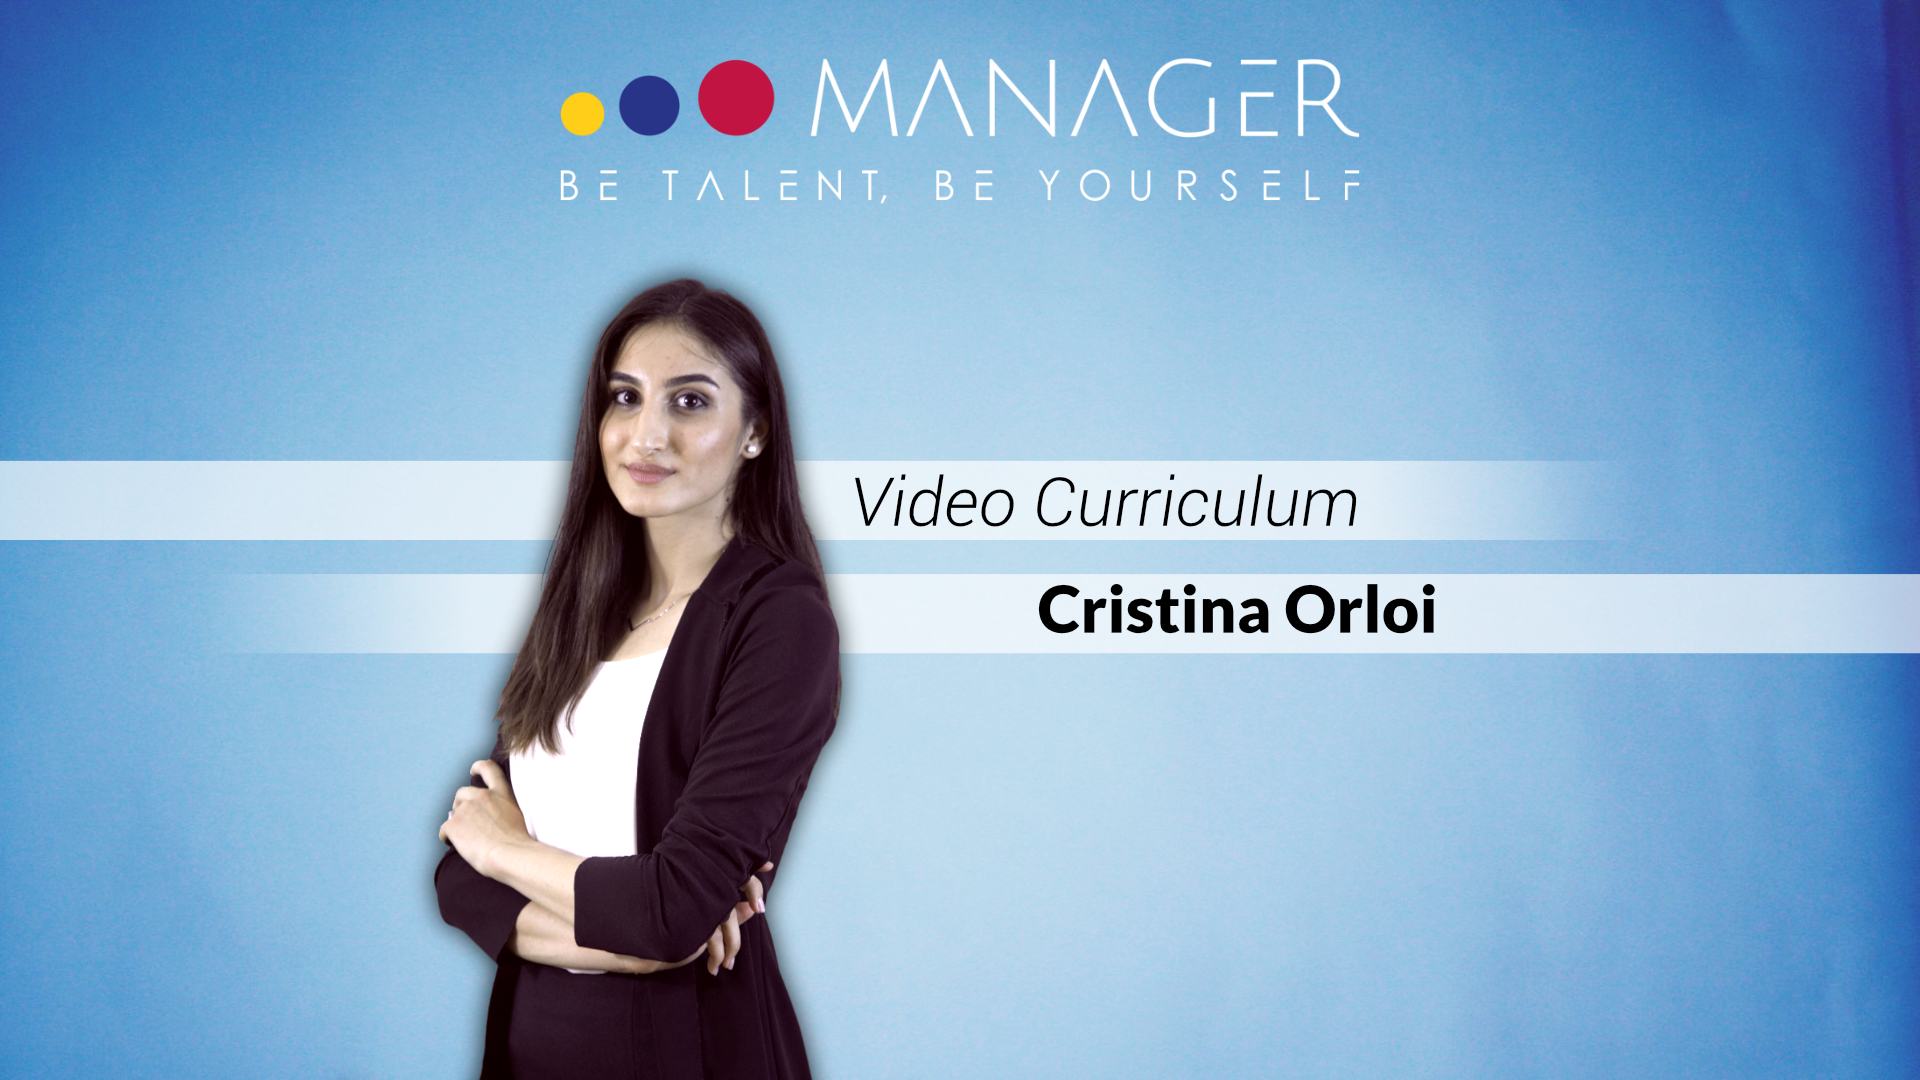 Video Curriculum di Cristina Orloi